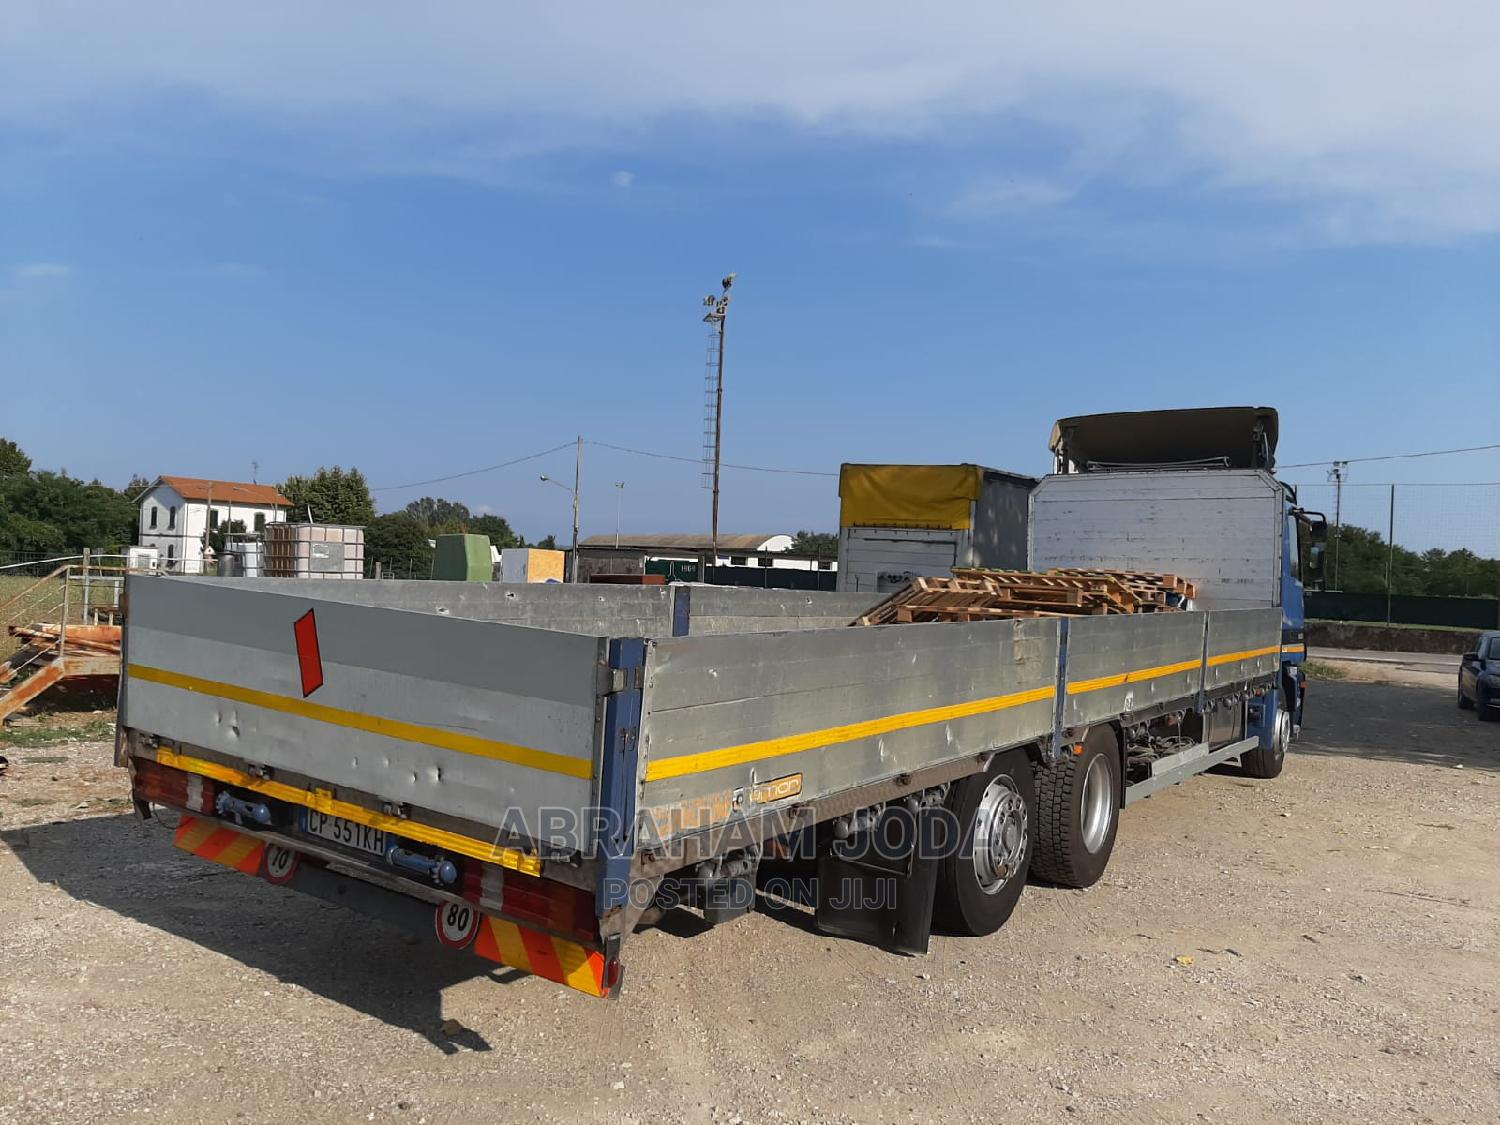 Mercedes Benz Actros 1835, Flatbed   Trucks & Trailers for sale in Apapa, Lagos State, Nigeria